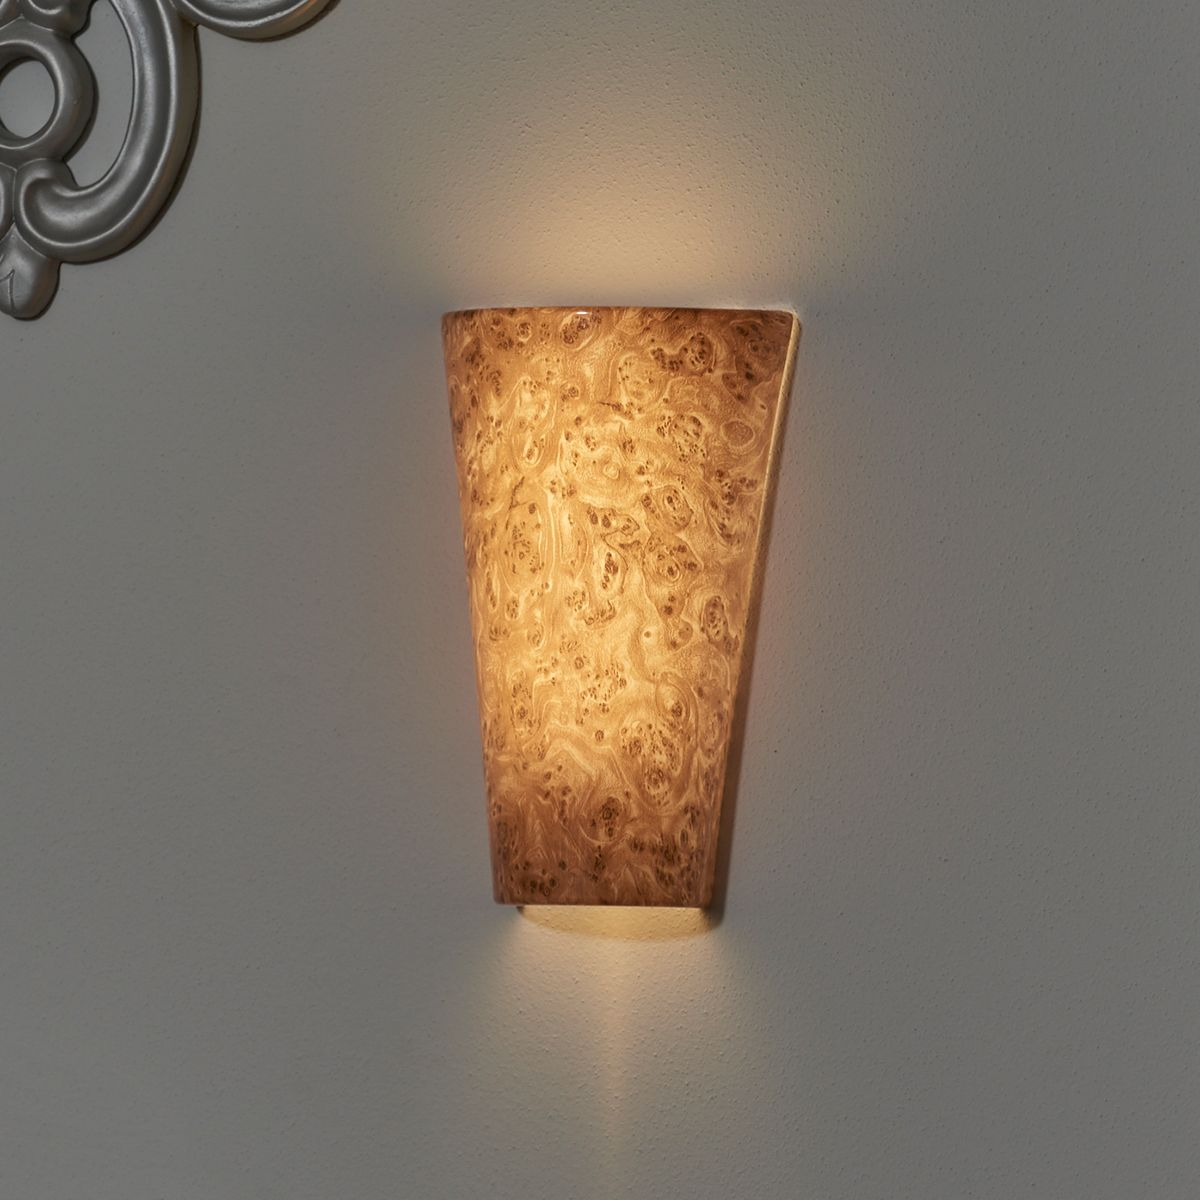 Vivid Burlwood High Gloss Sconce Battery Operated Wall Sconce Battery Wall Lights Sconces